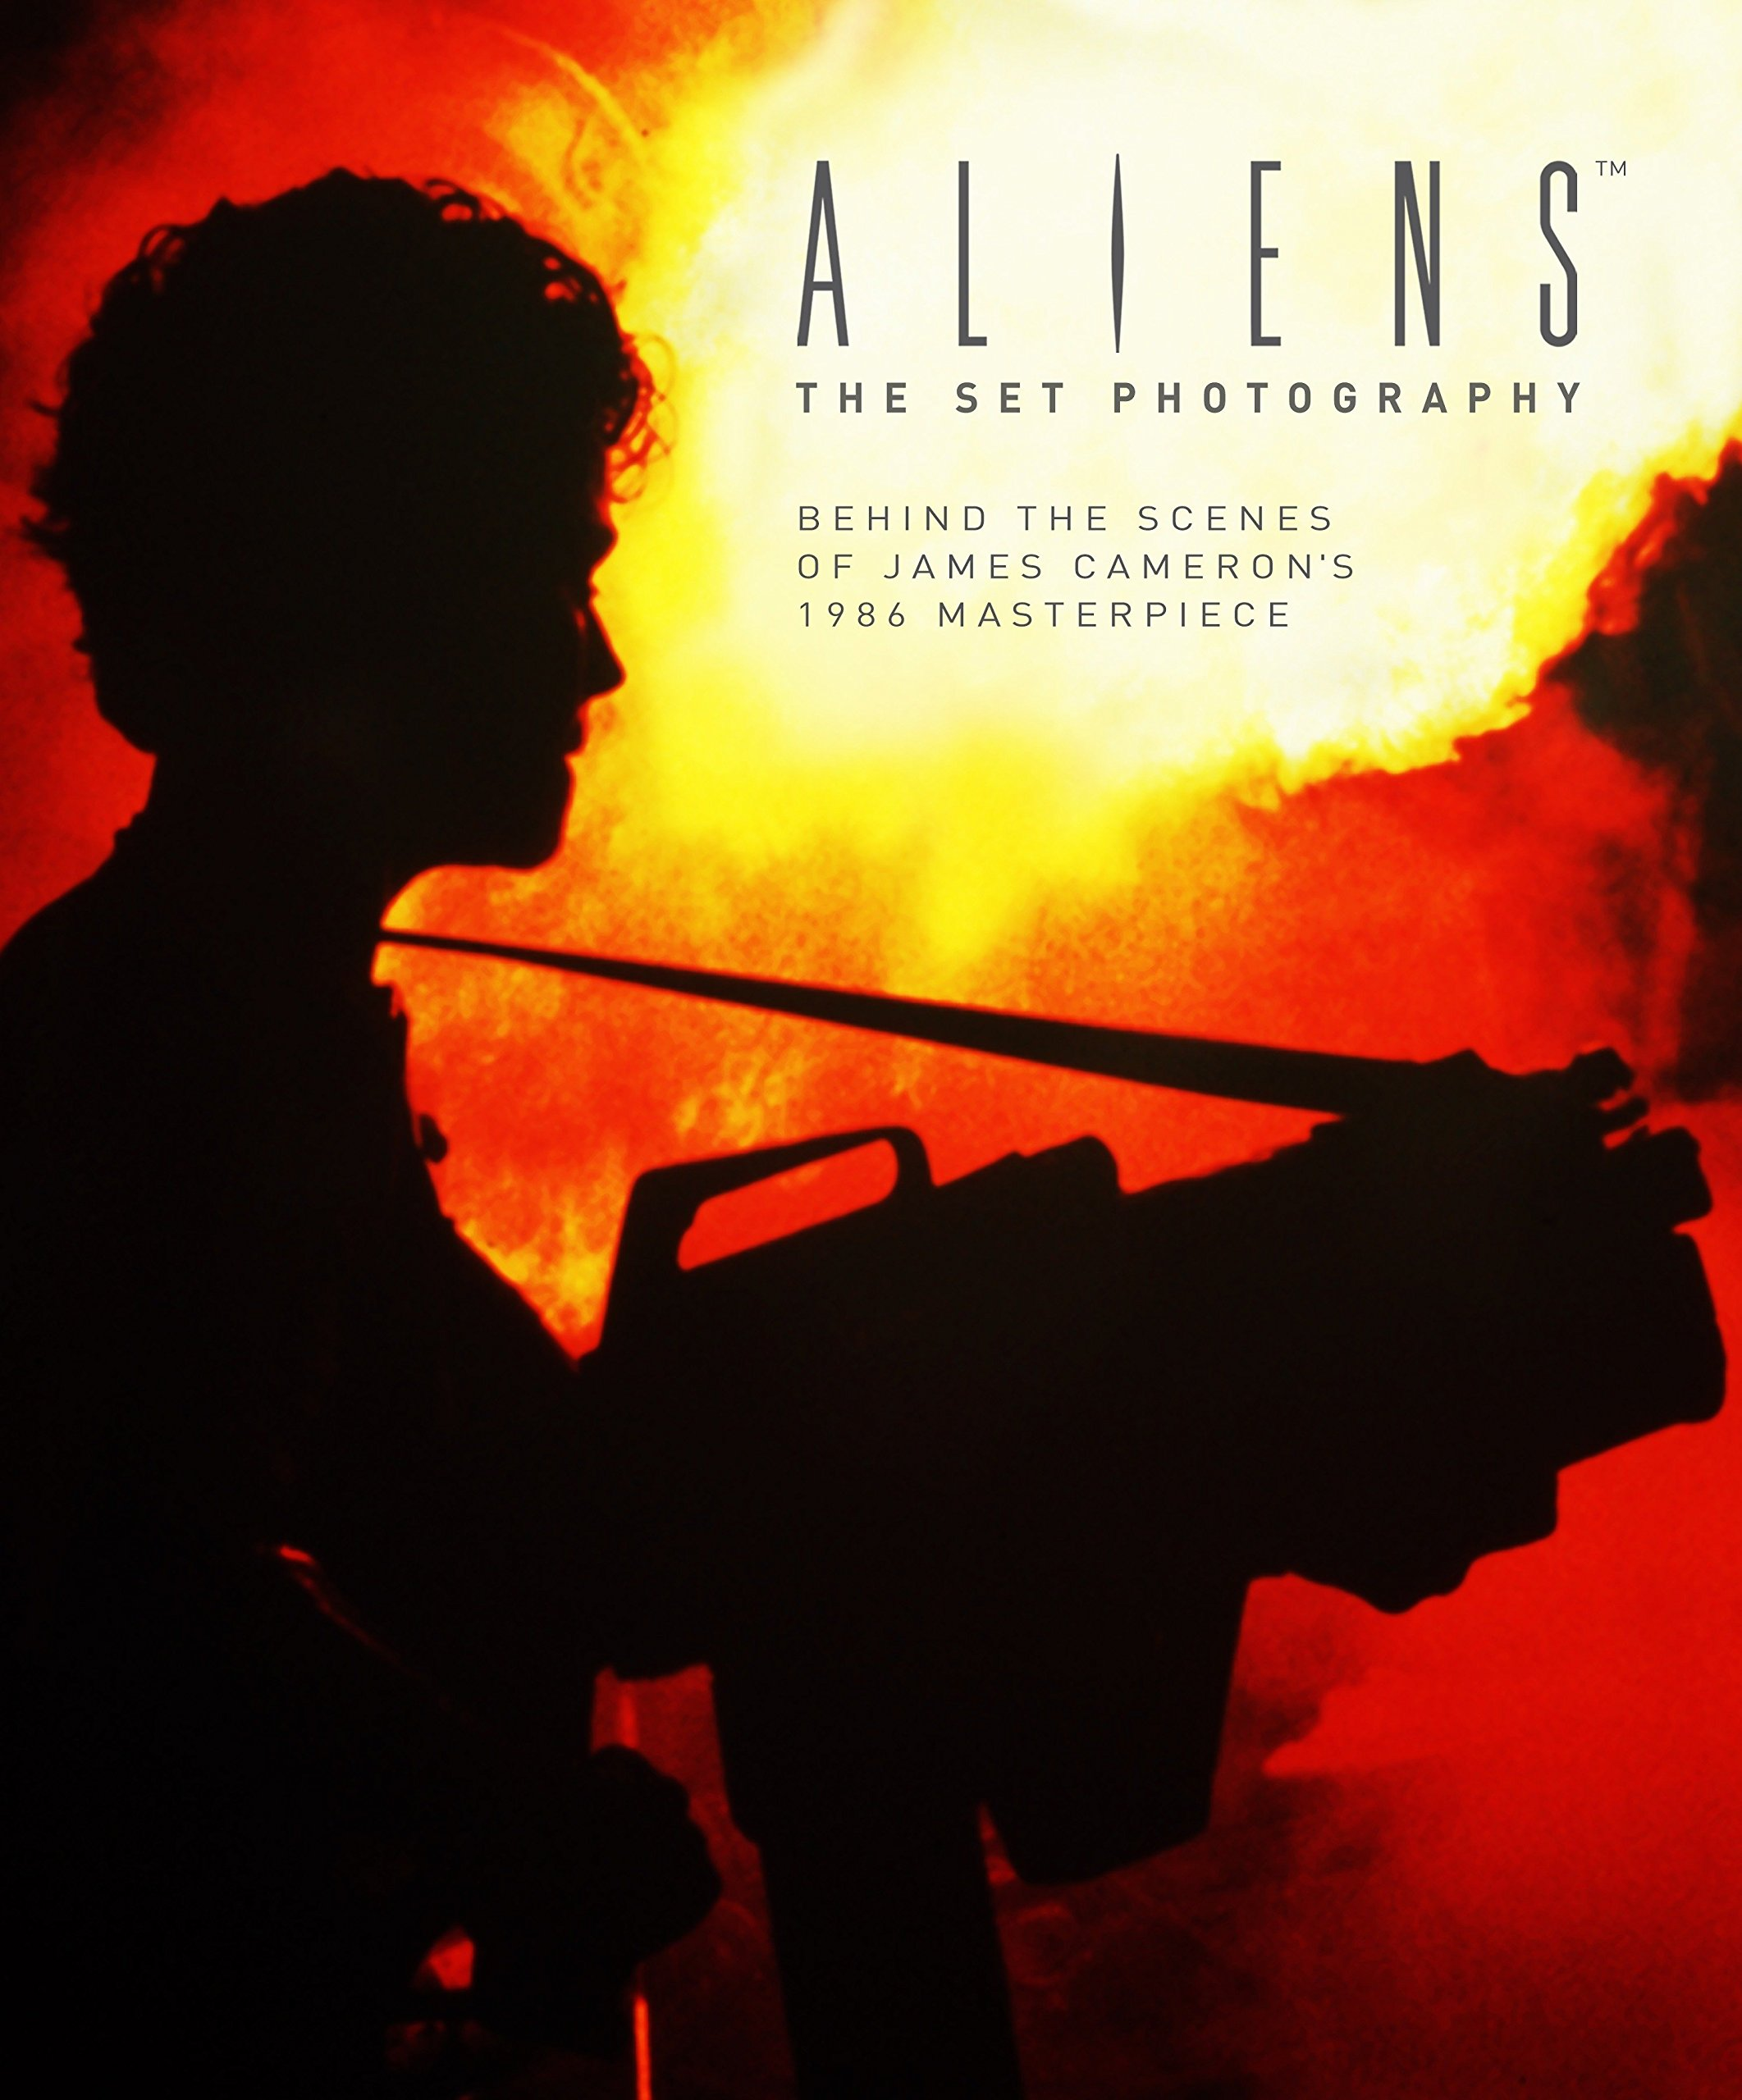 aliens the set photography behind the scenes of james camerons 1986 masterpiece